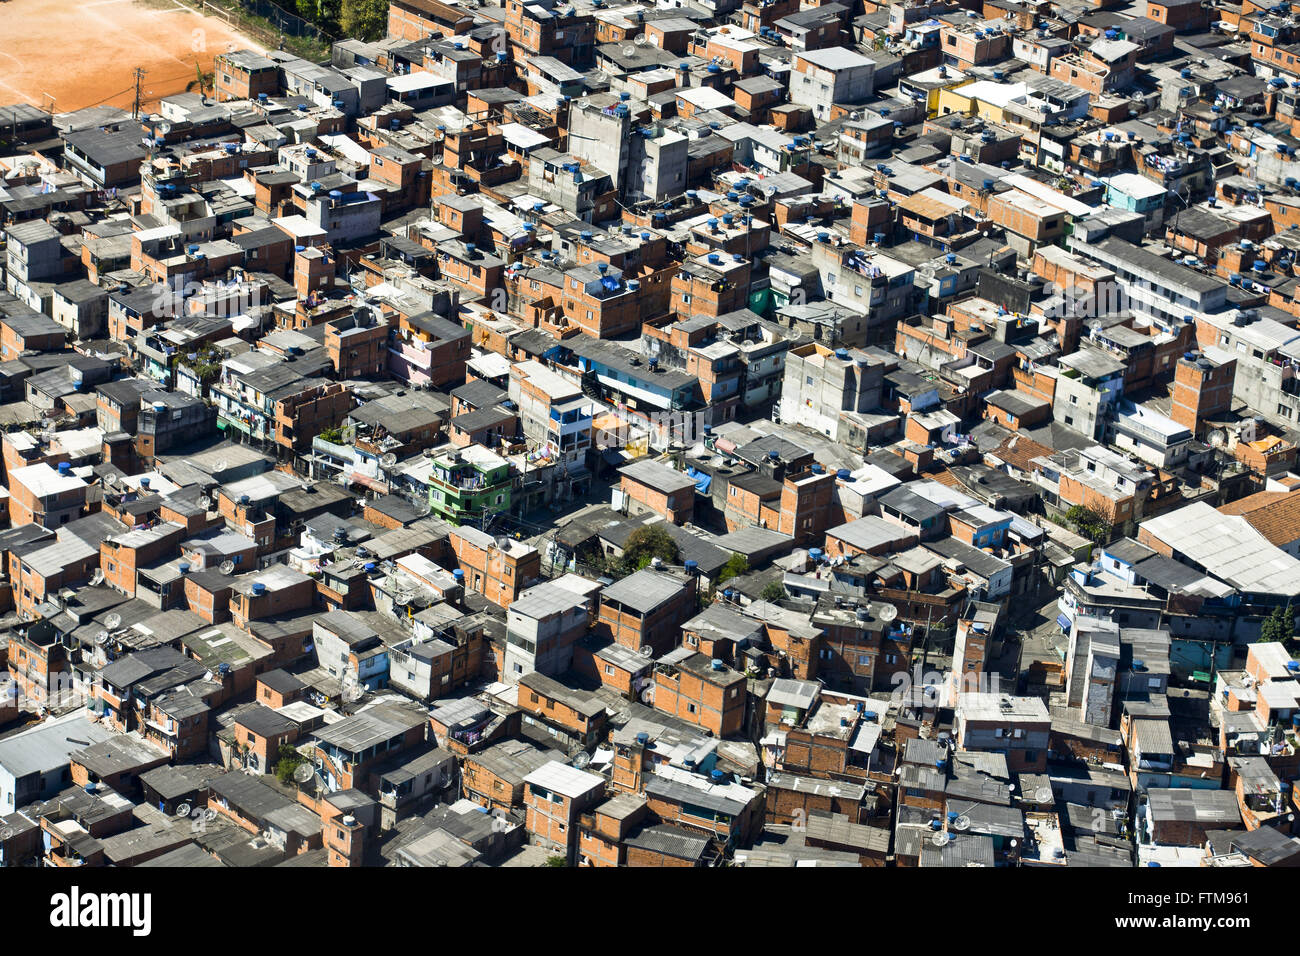 Aerial view of affordable housing - Stock Image